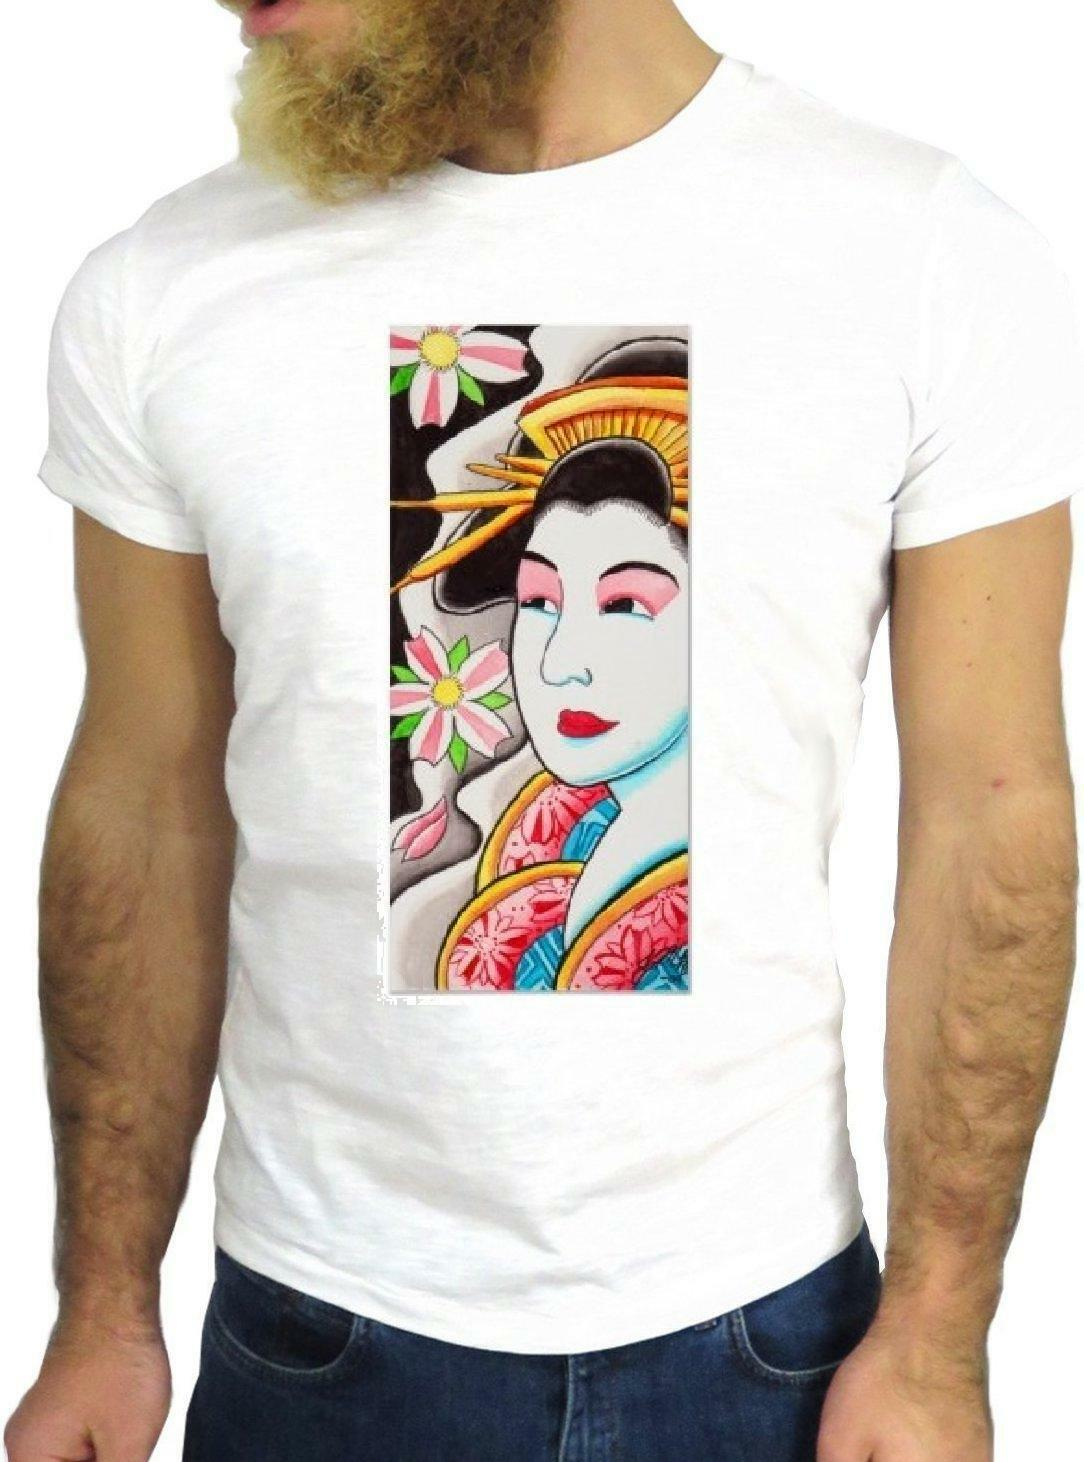 T-SHIRT JODE GGG24 Z1810 GEISHA CARTOON COULEURS COOL GREAT CHINA JAPAN FASHION EN Hommes Femmes Unisexes T-shirt Livraison Gratuite